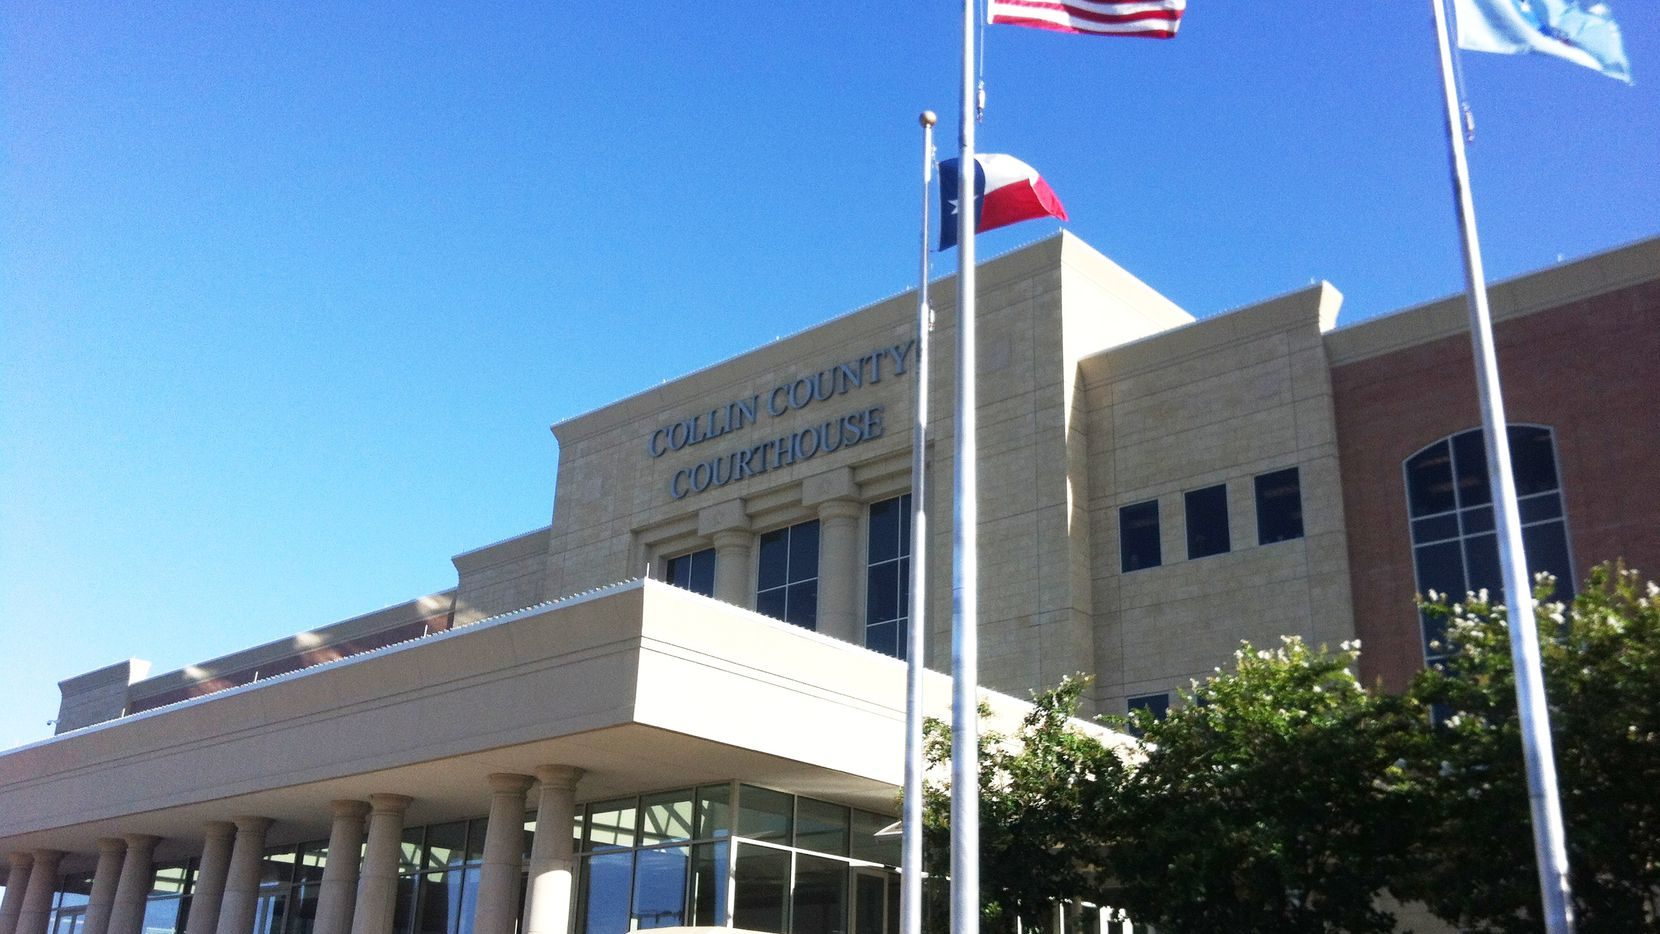 A spokesman for the Collin County district attorney's office declined to predict whether it would seek the death penalty for serial murder suspect Billy Chemirmir, saying the office doesn't comment on pending cases.